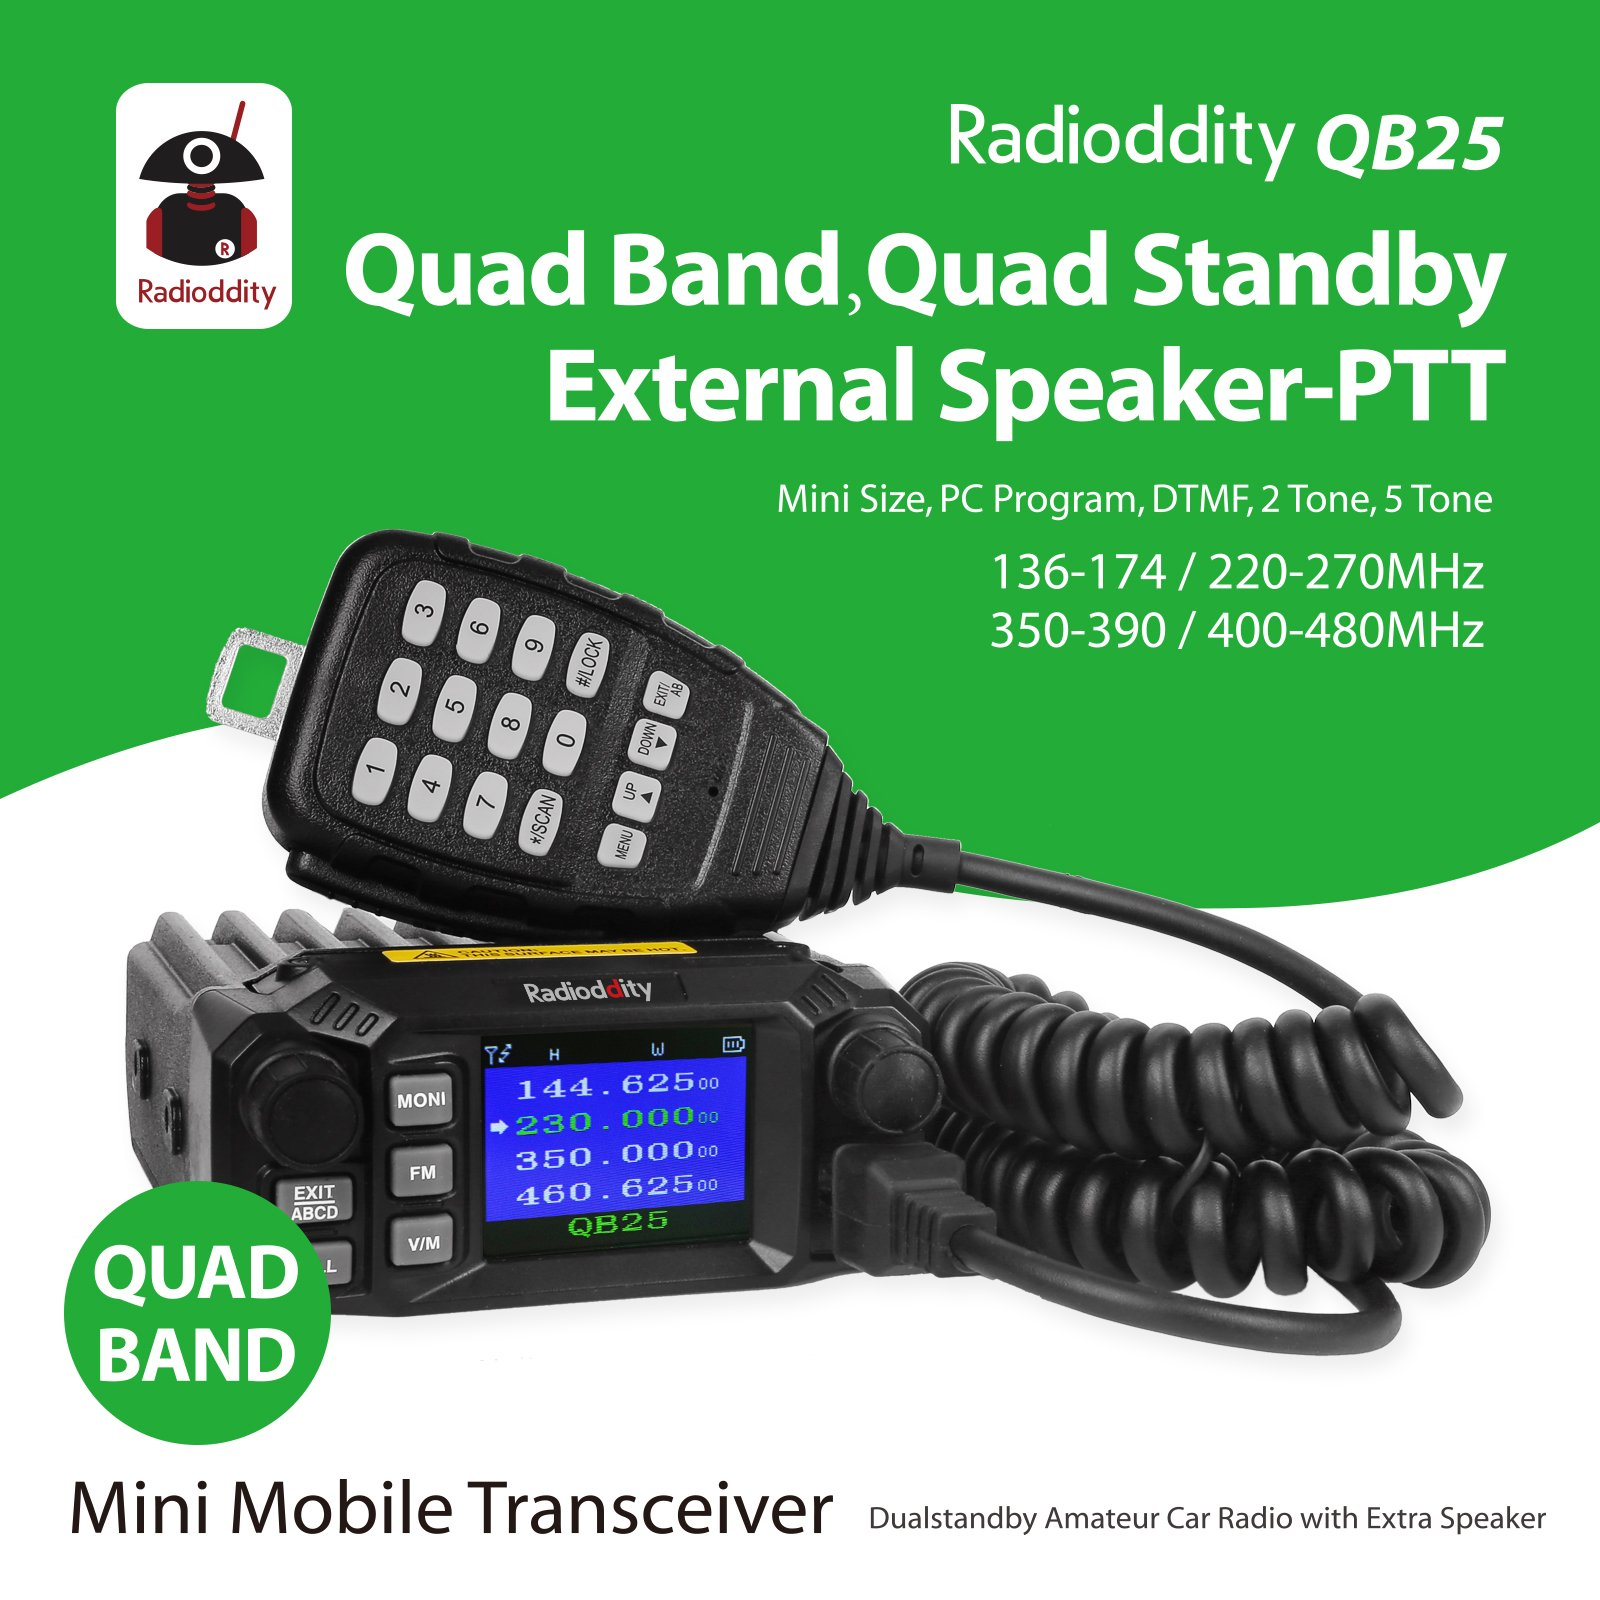 Radioddity QB25 Pro Quad Band Quad-standby Mini Mobile Car Truck Radio, VHF UHF 144/220/350/440 MHz, 25W Vehicle Transceiver with Cable & CD + 50W High Gain Quad Band Antenna by Radioddity (Image #2)